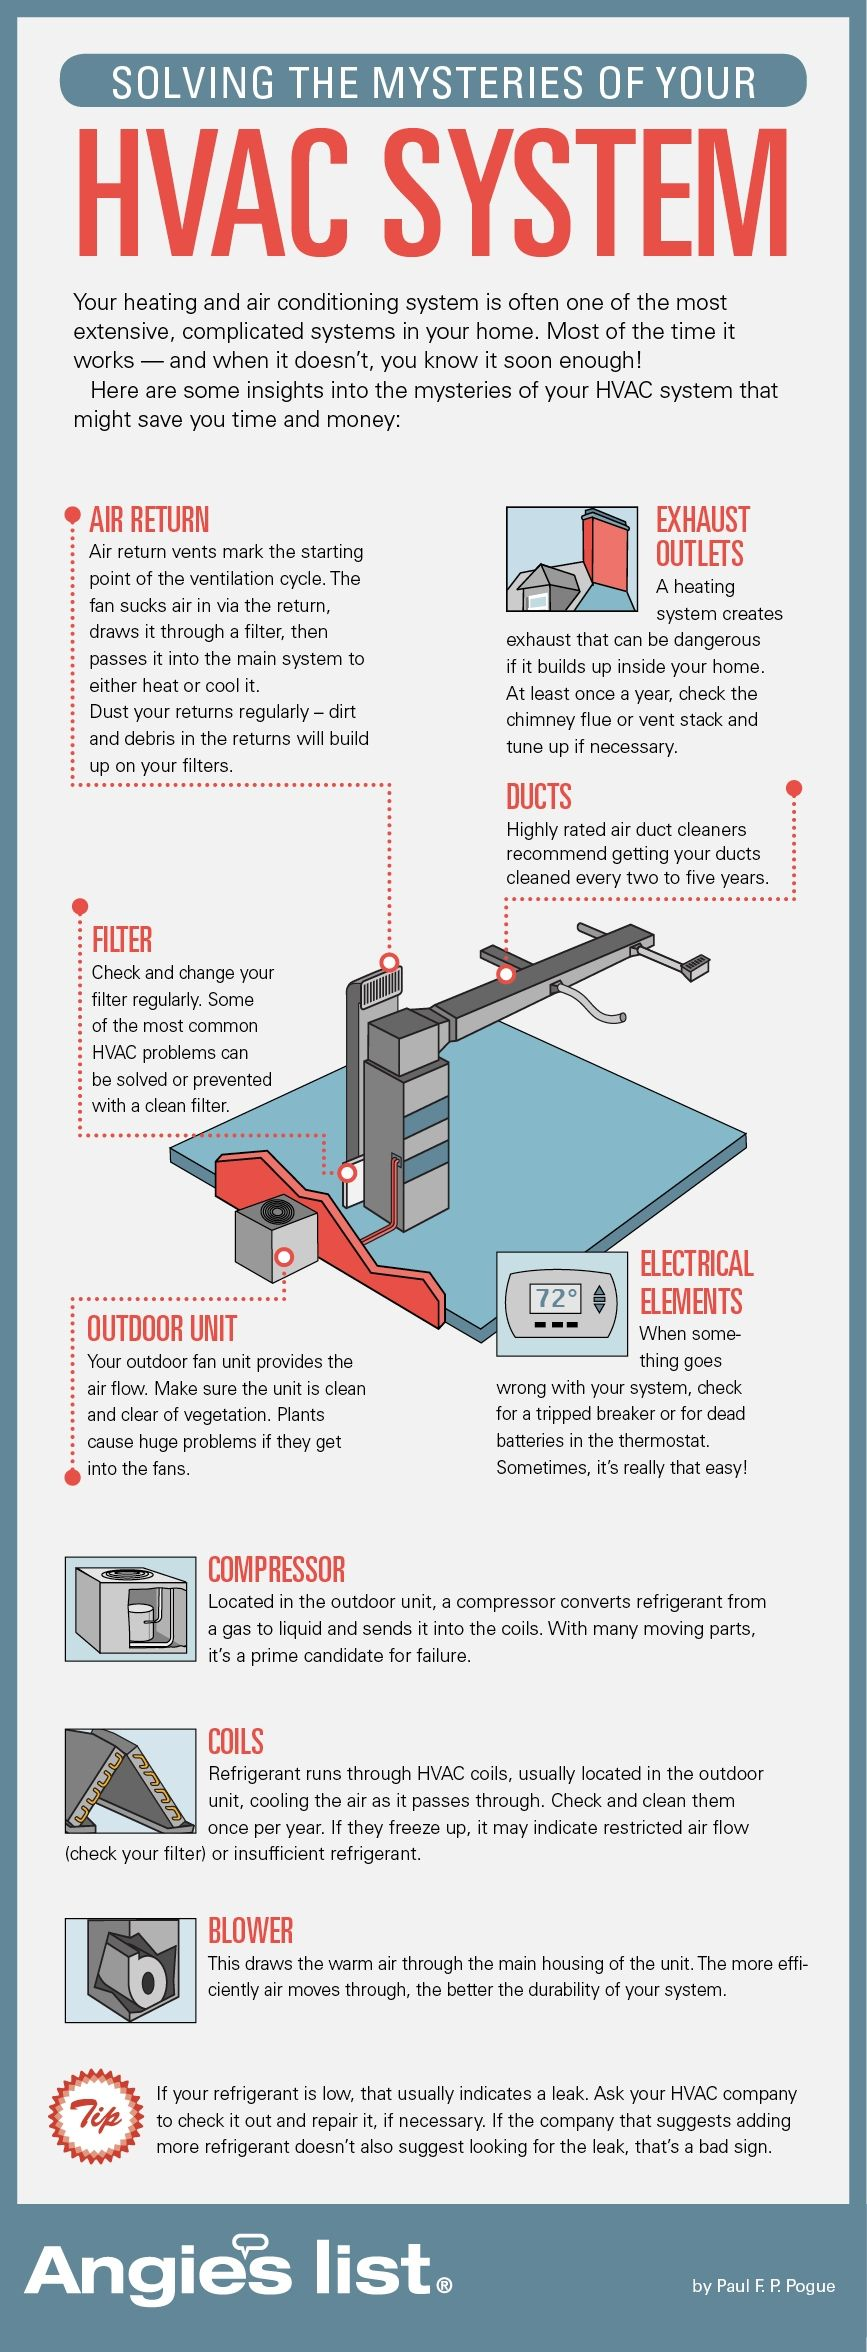 How Your Air Conditioner Works Infographic VoTech in